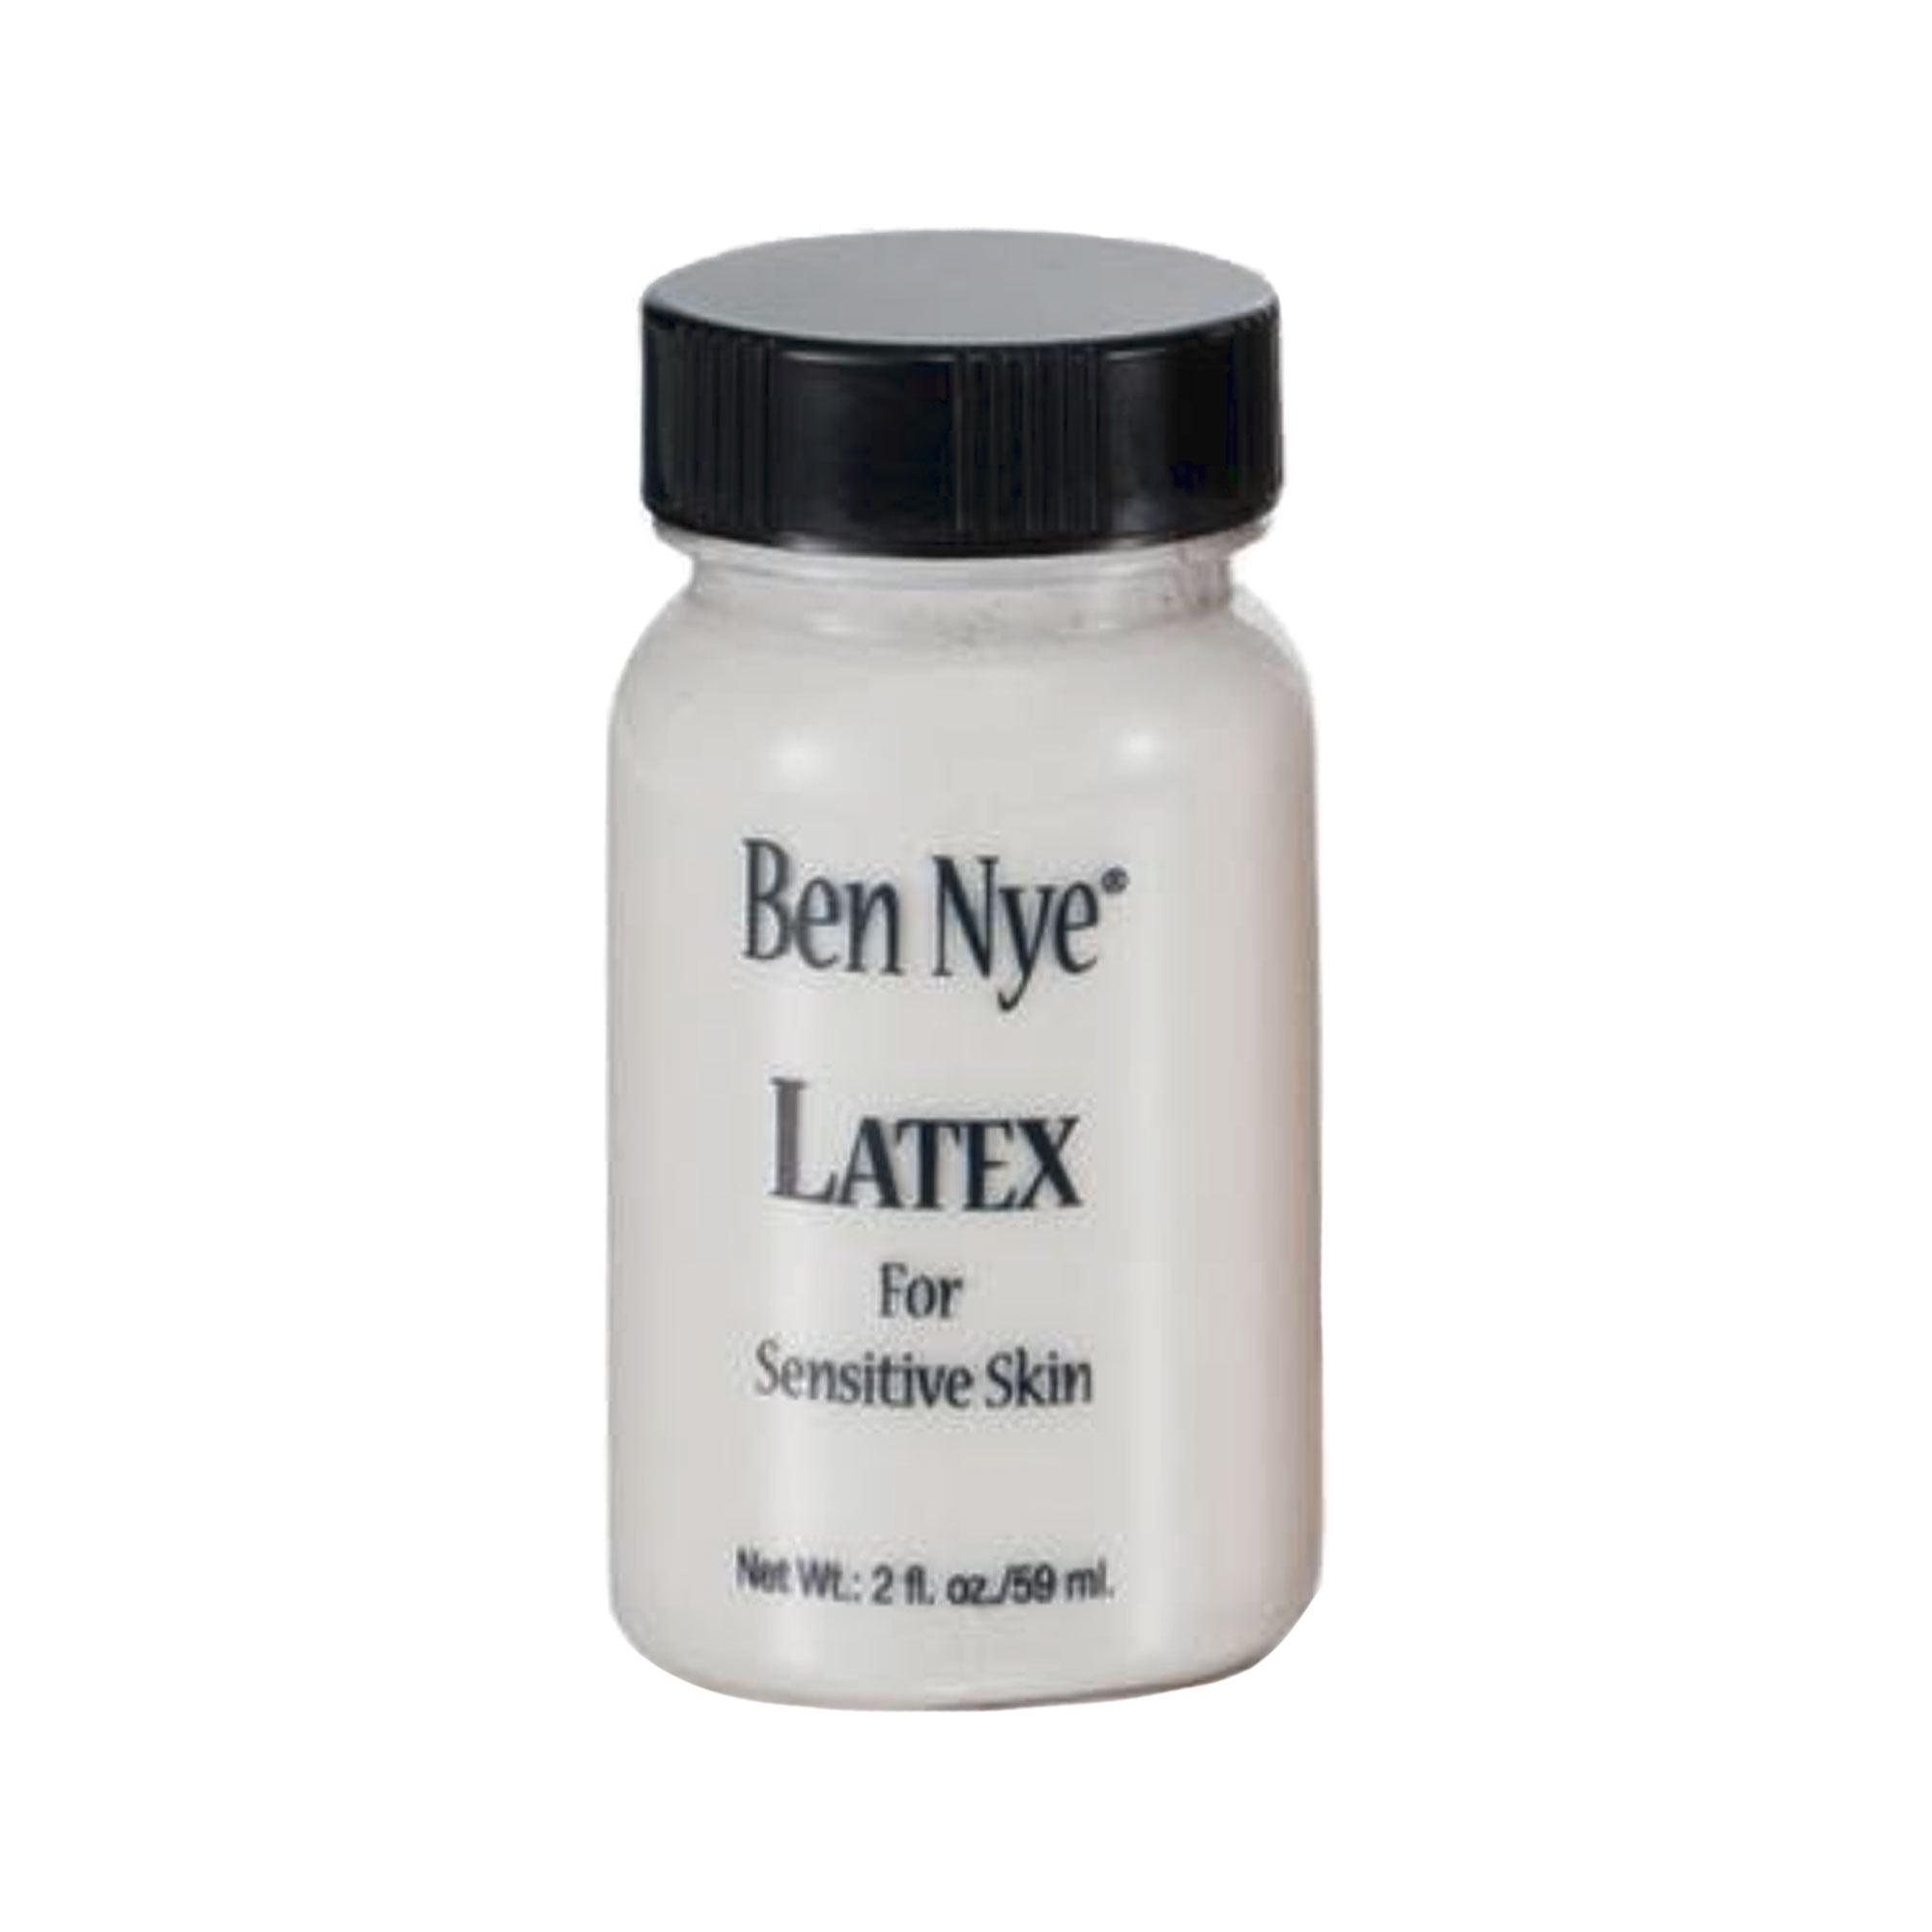 Ben Nye Liquid Latex for Sensitive Skin